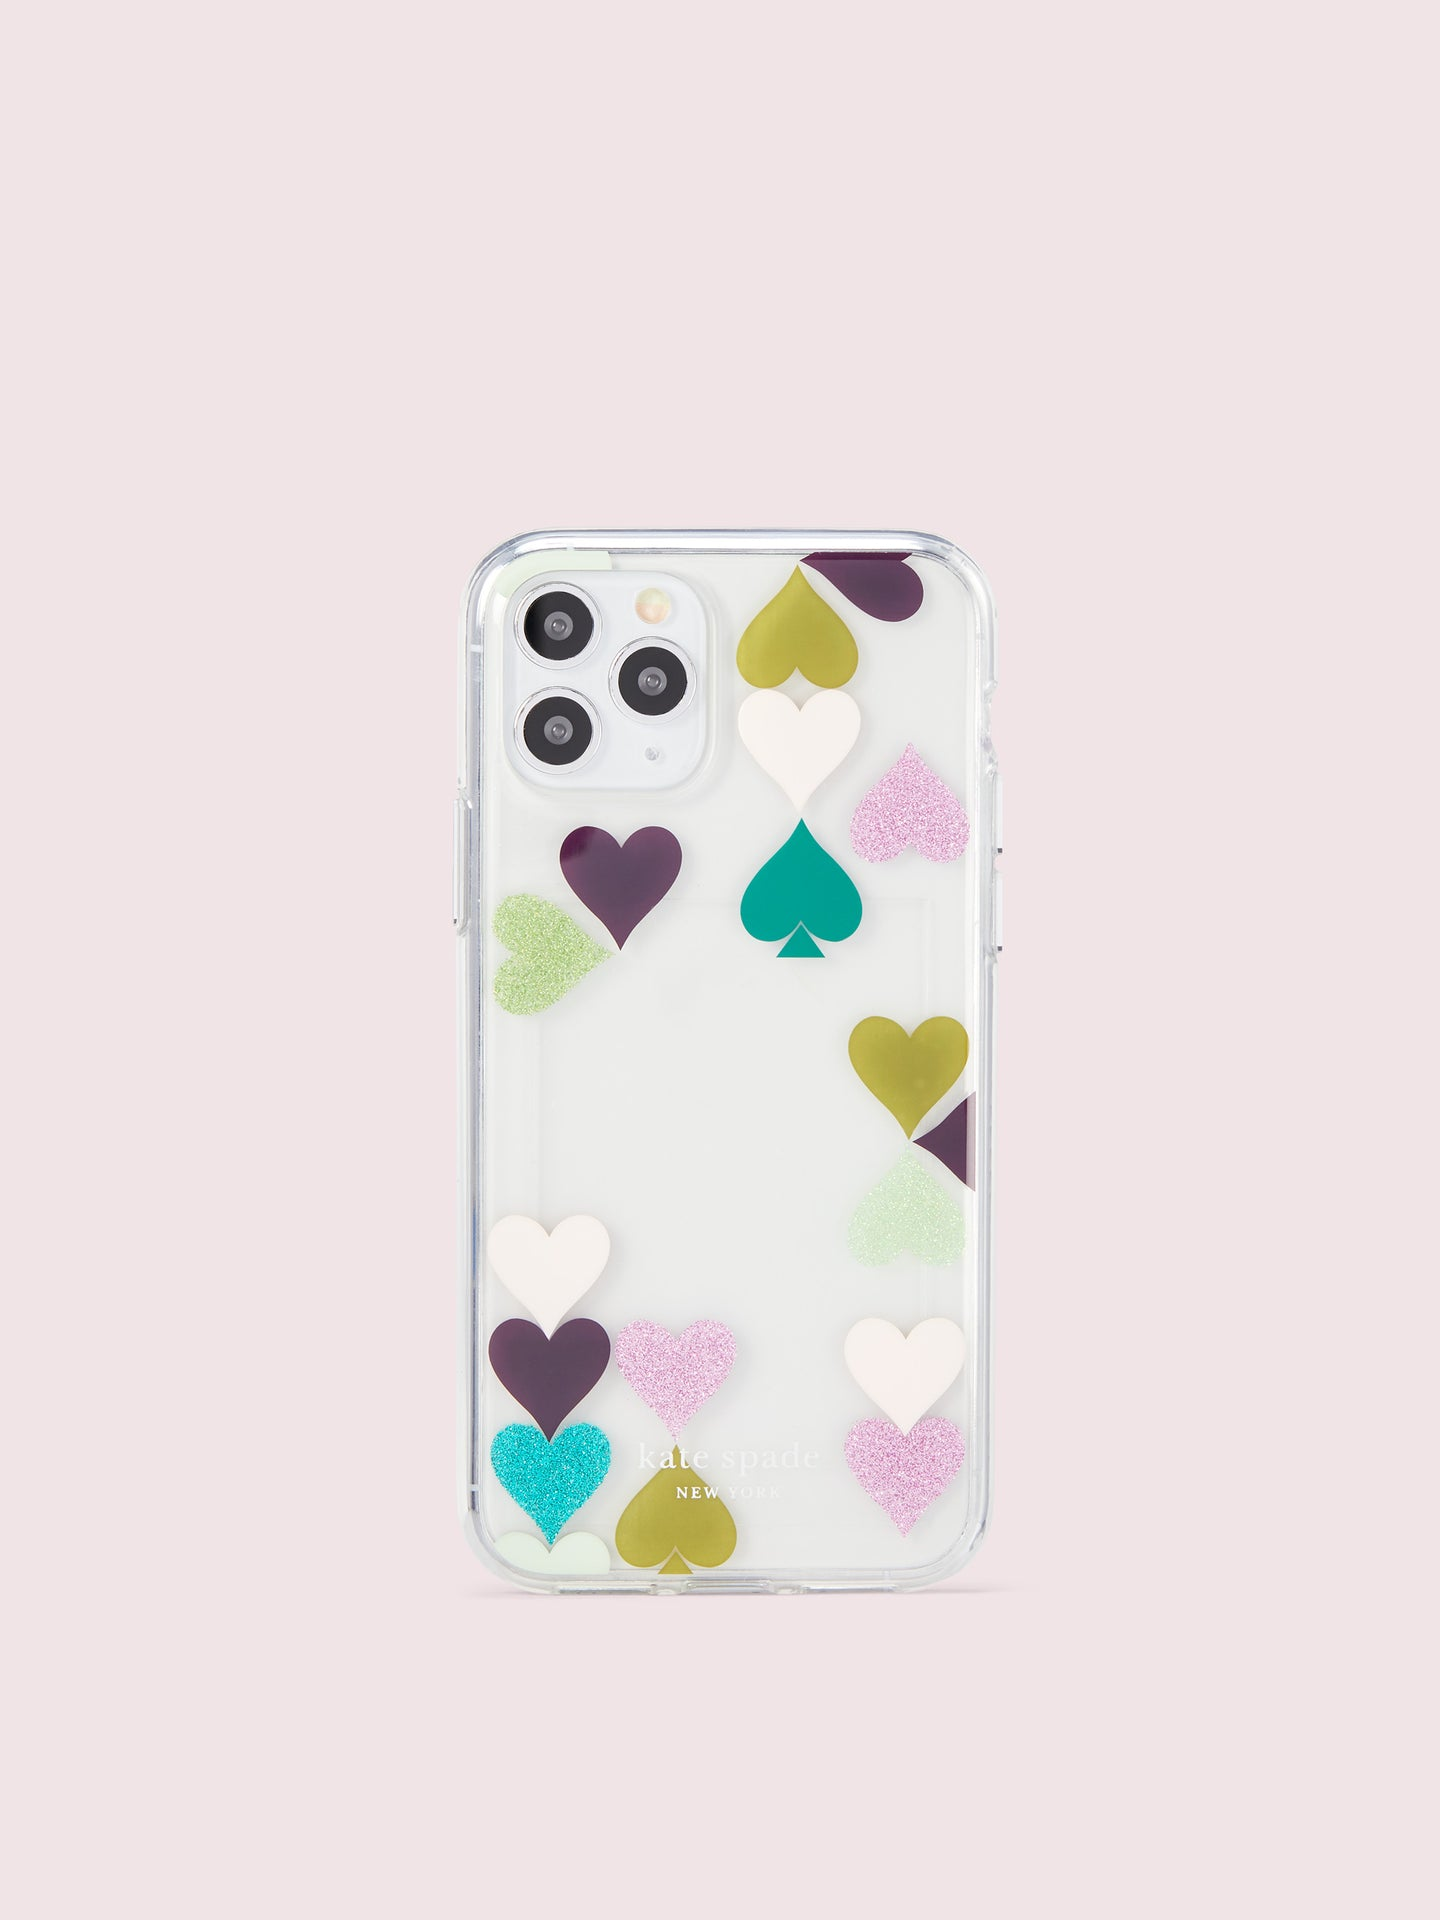 HEART SPADE PHOTO FRAME IPHONE 11 PRO CASE